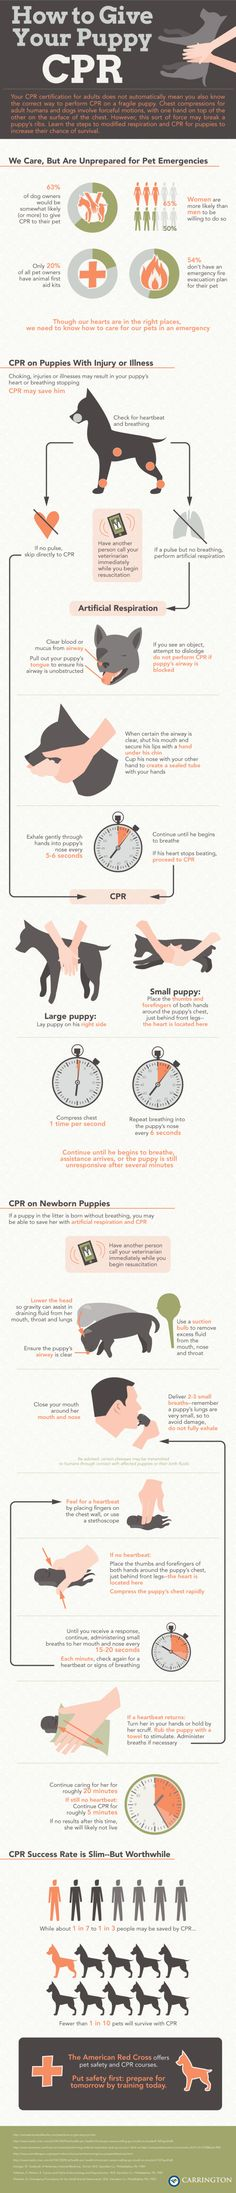 Would you know what to do if you saw your dog choking? If not, it's important to learn dog CPR. Find out how to perform CPR on adult dogs and puppies here.